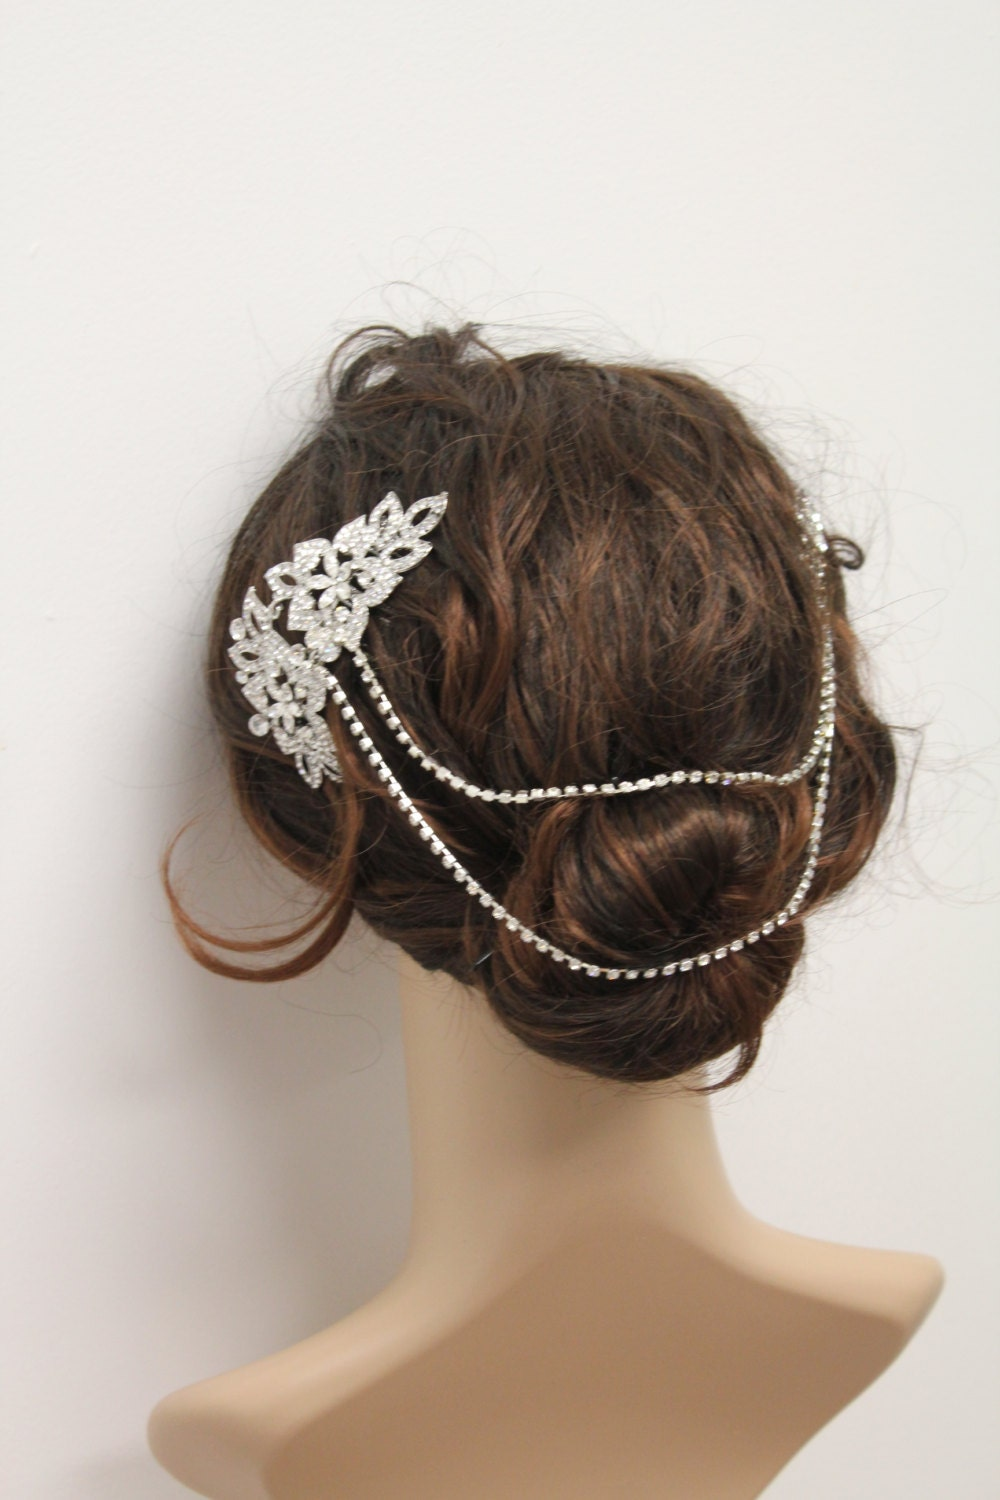 Popular Items For Greek Headpiece On Etsy